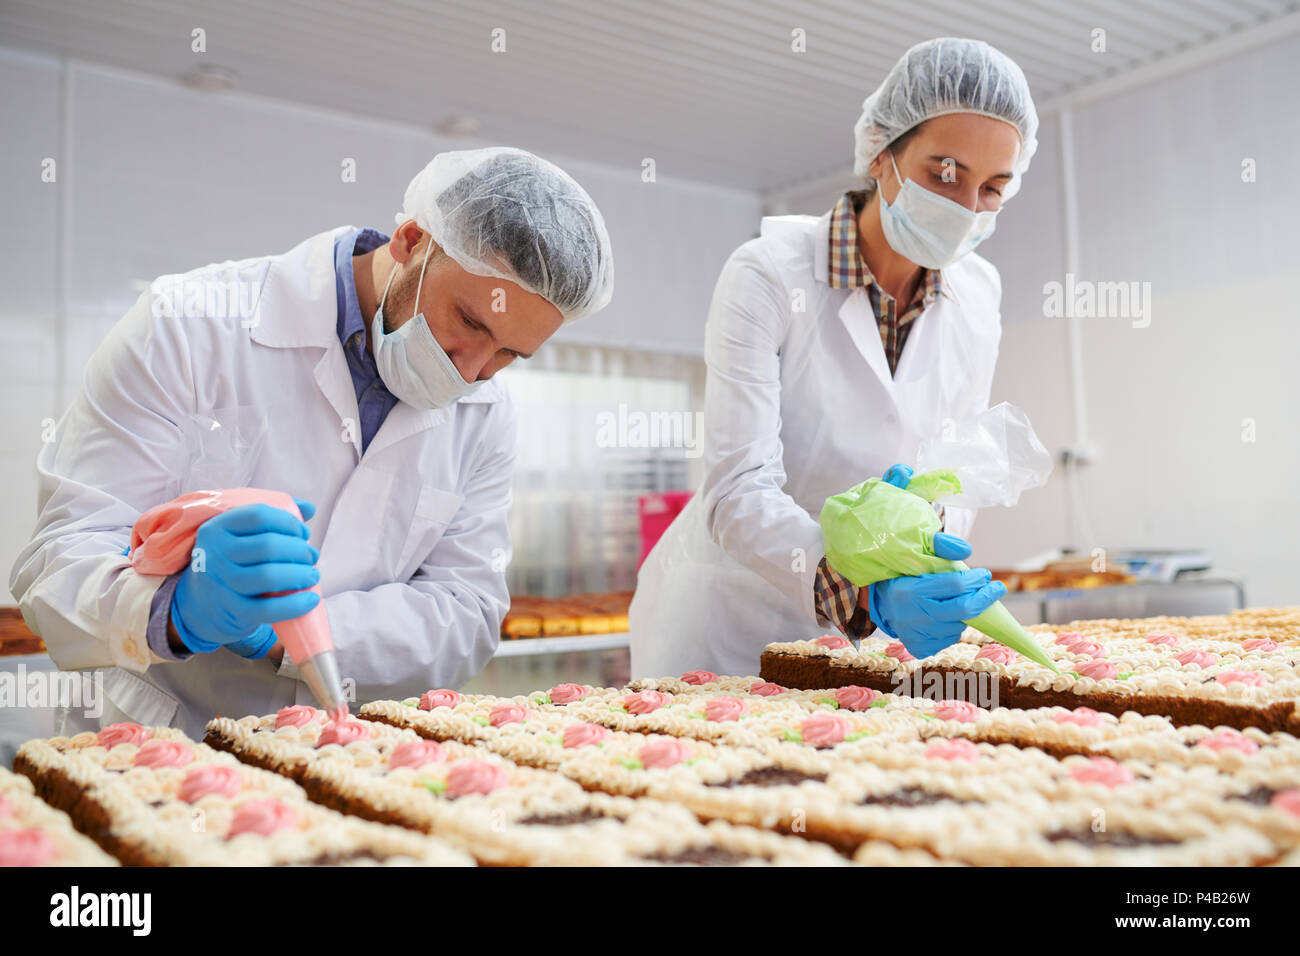 Process of cakes decorating on factory - Stock Image